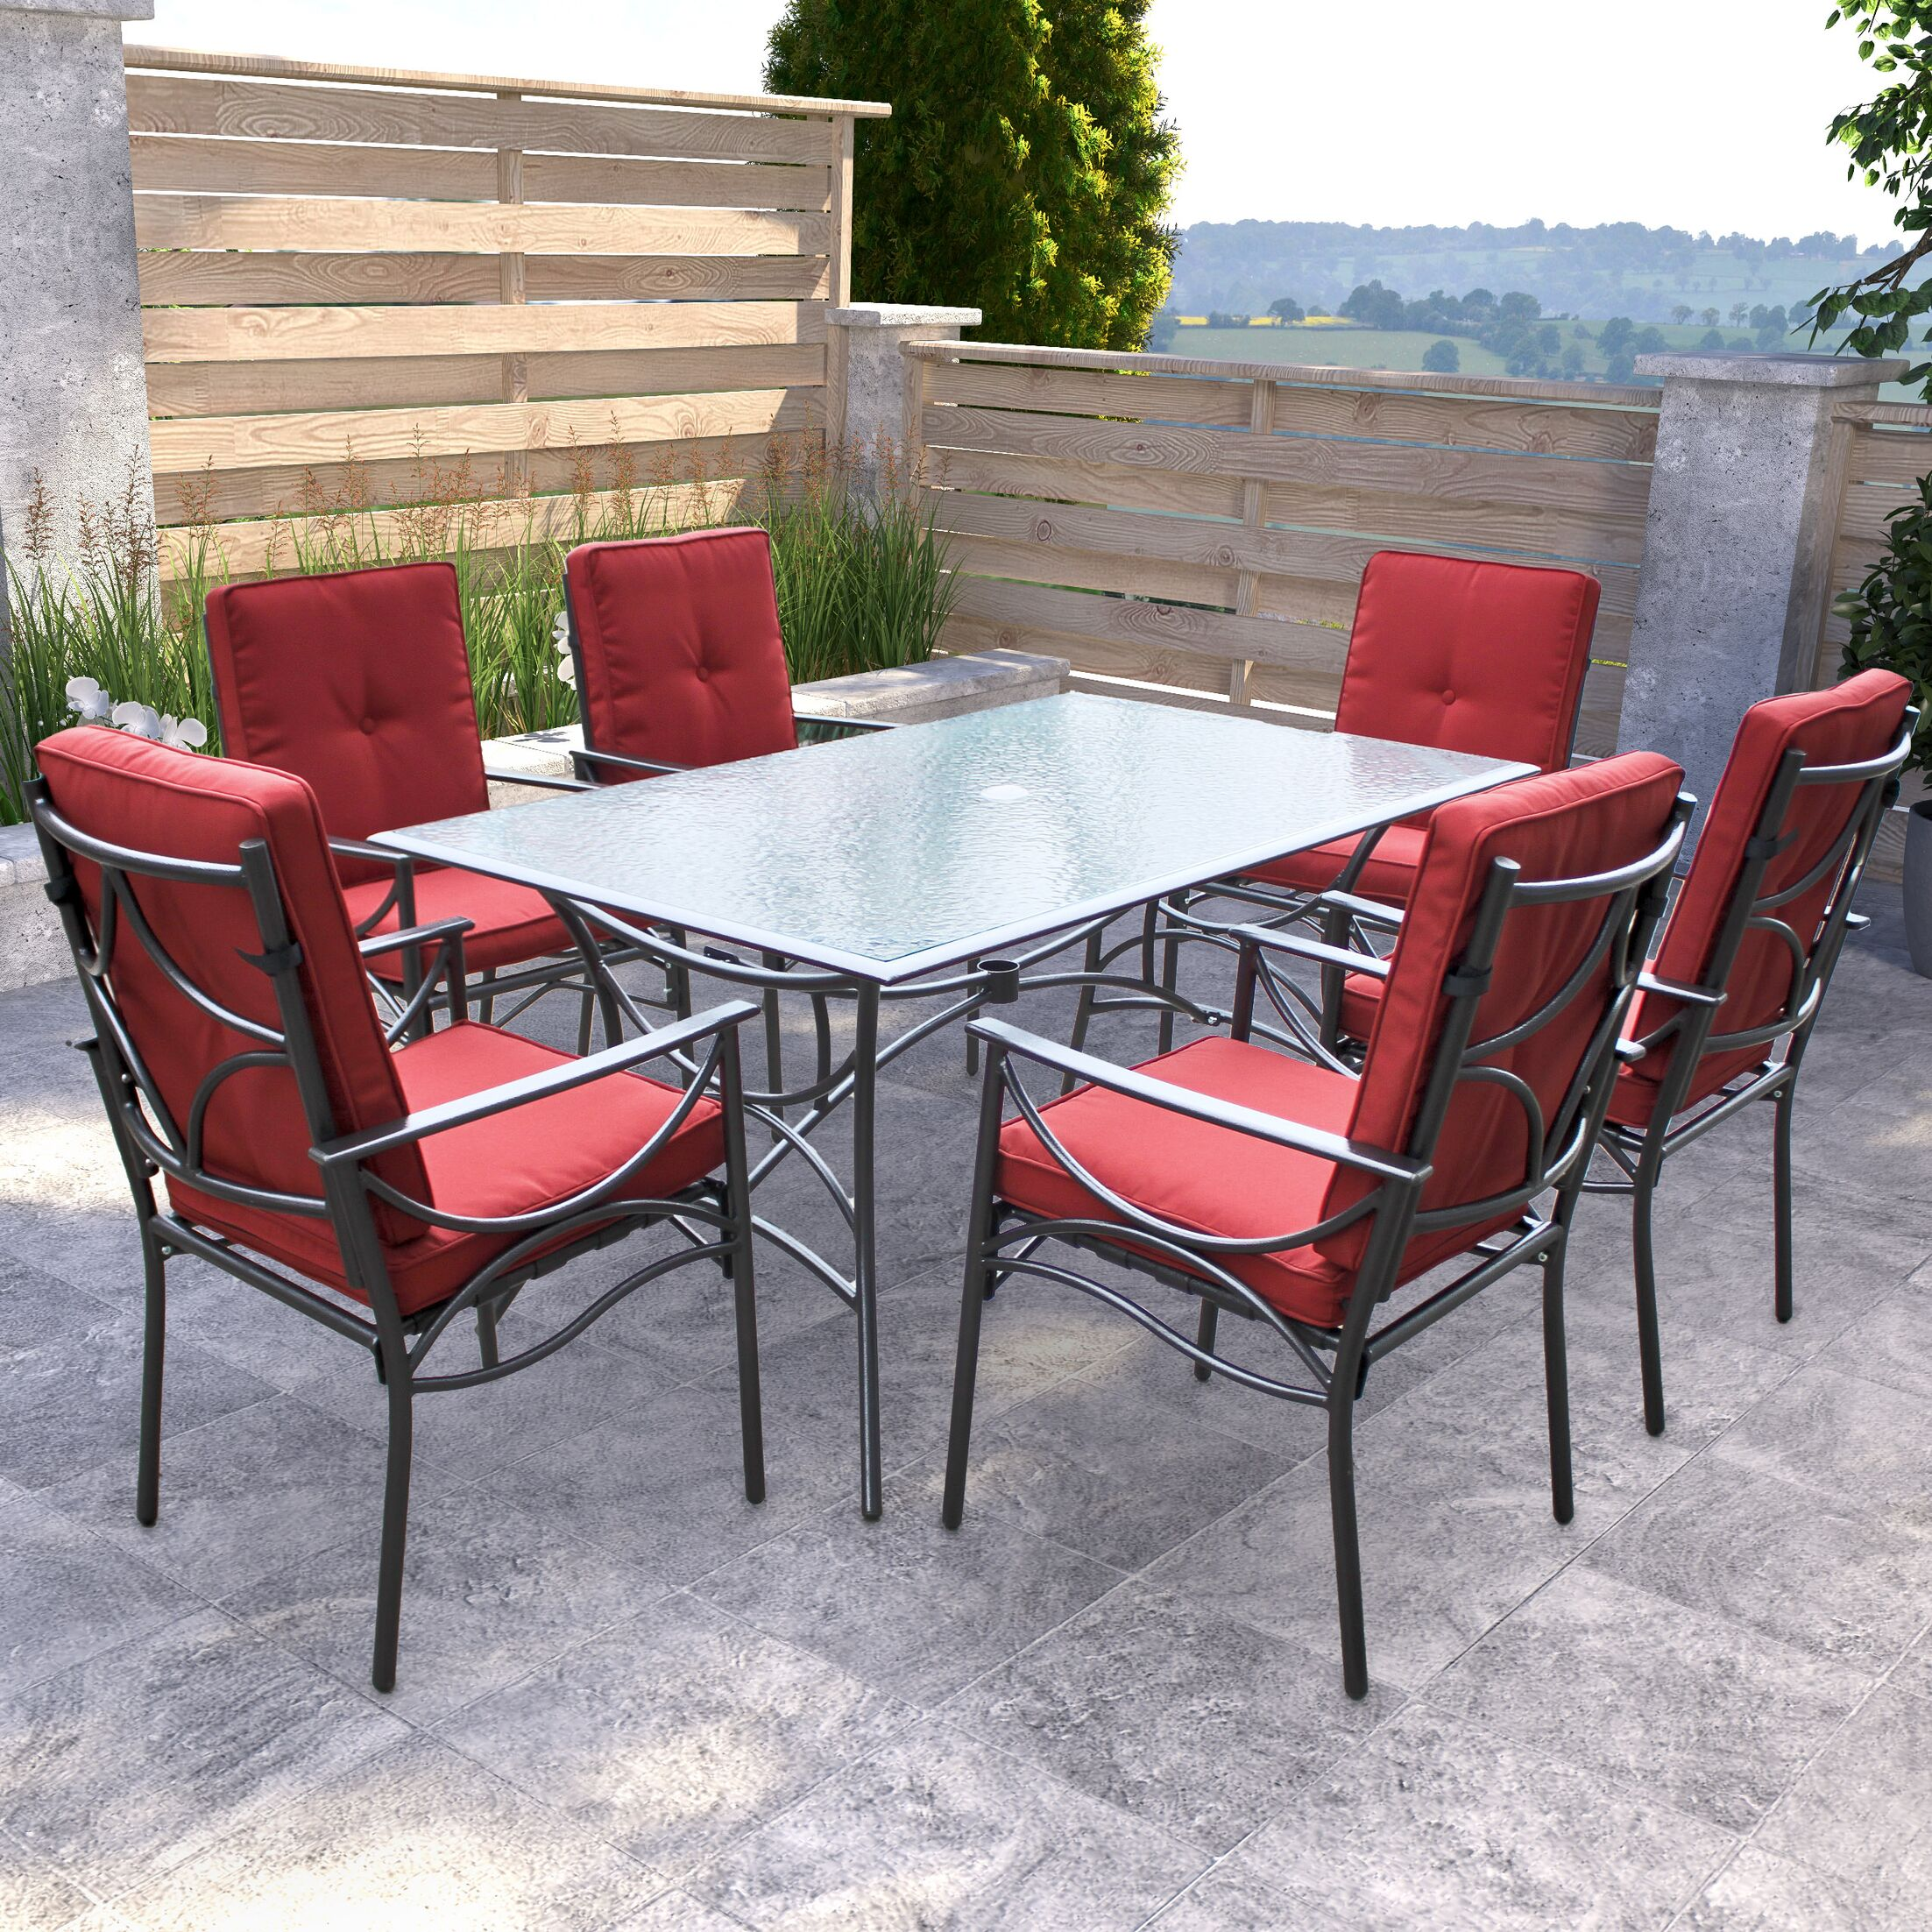 Oliver 7 Piece Dining Set with Cushions